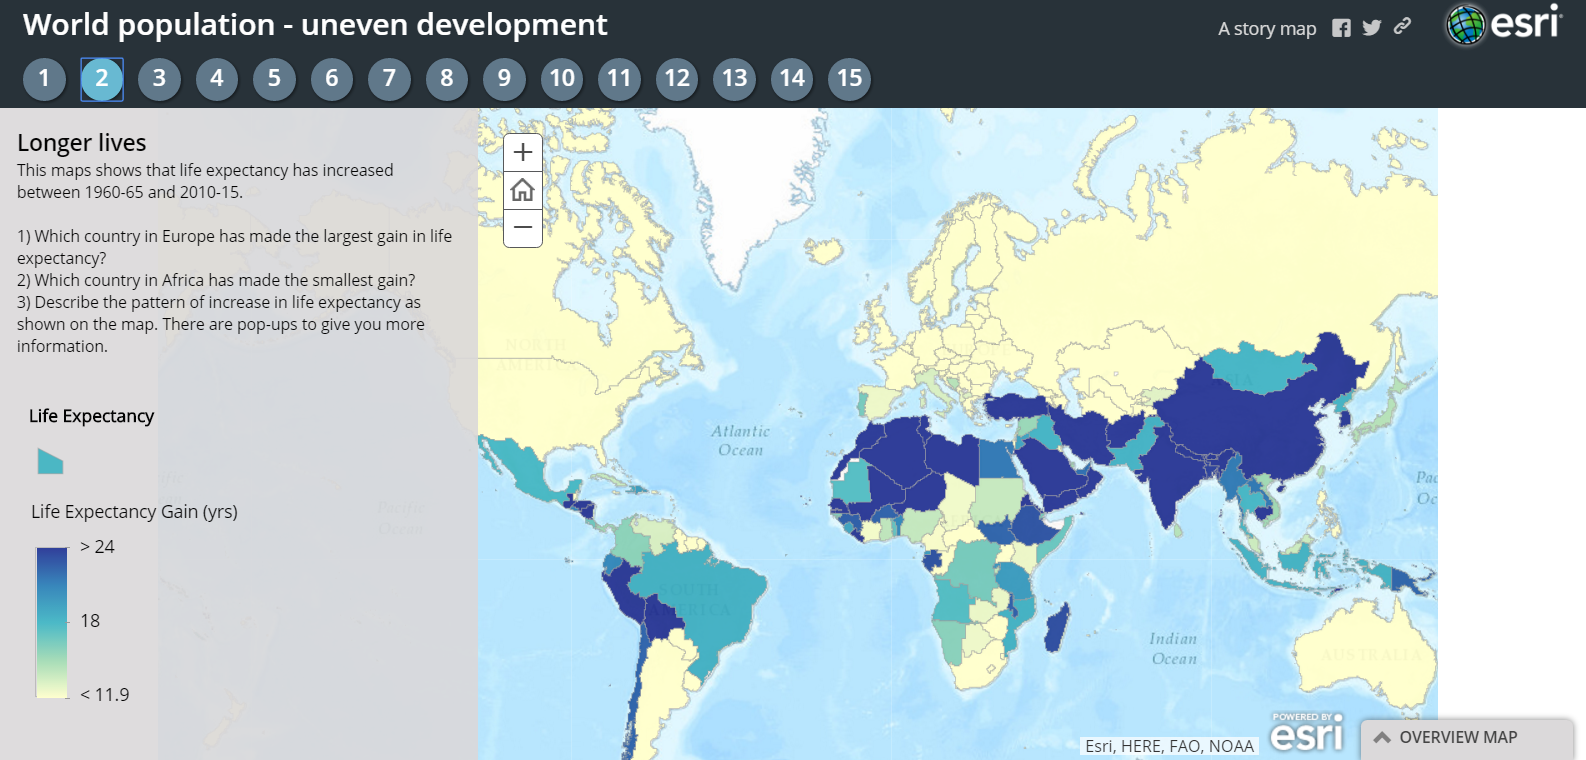 Free Technology For Teachers World Population Trends - Interactive map of world